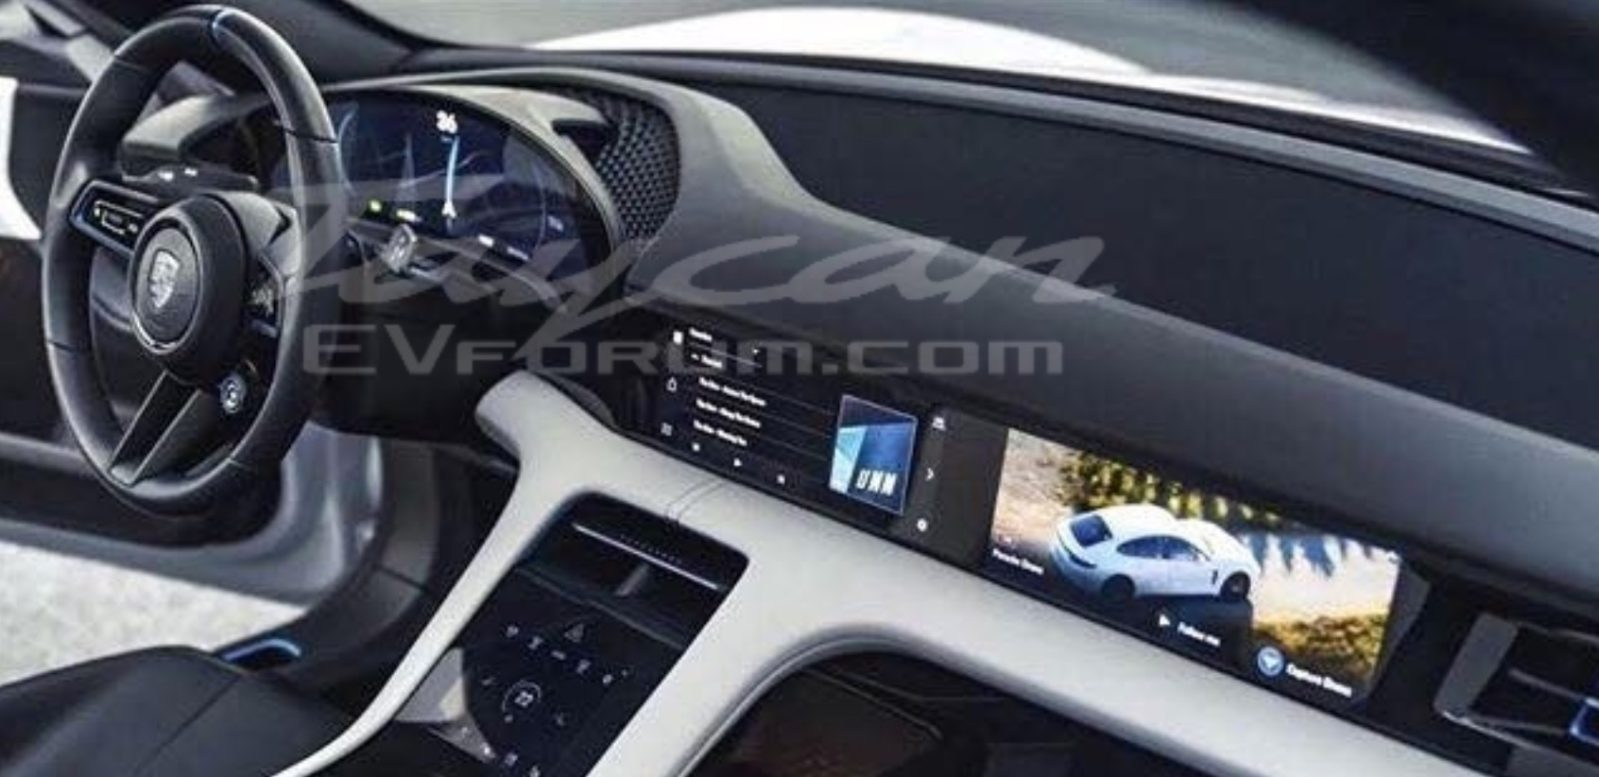 Porsche Taycan Interior Revealed In Leaked Images Electrek